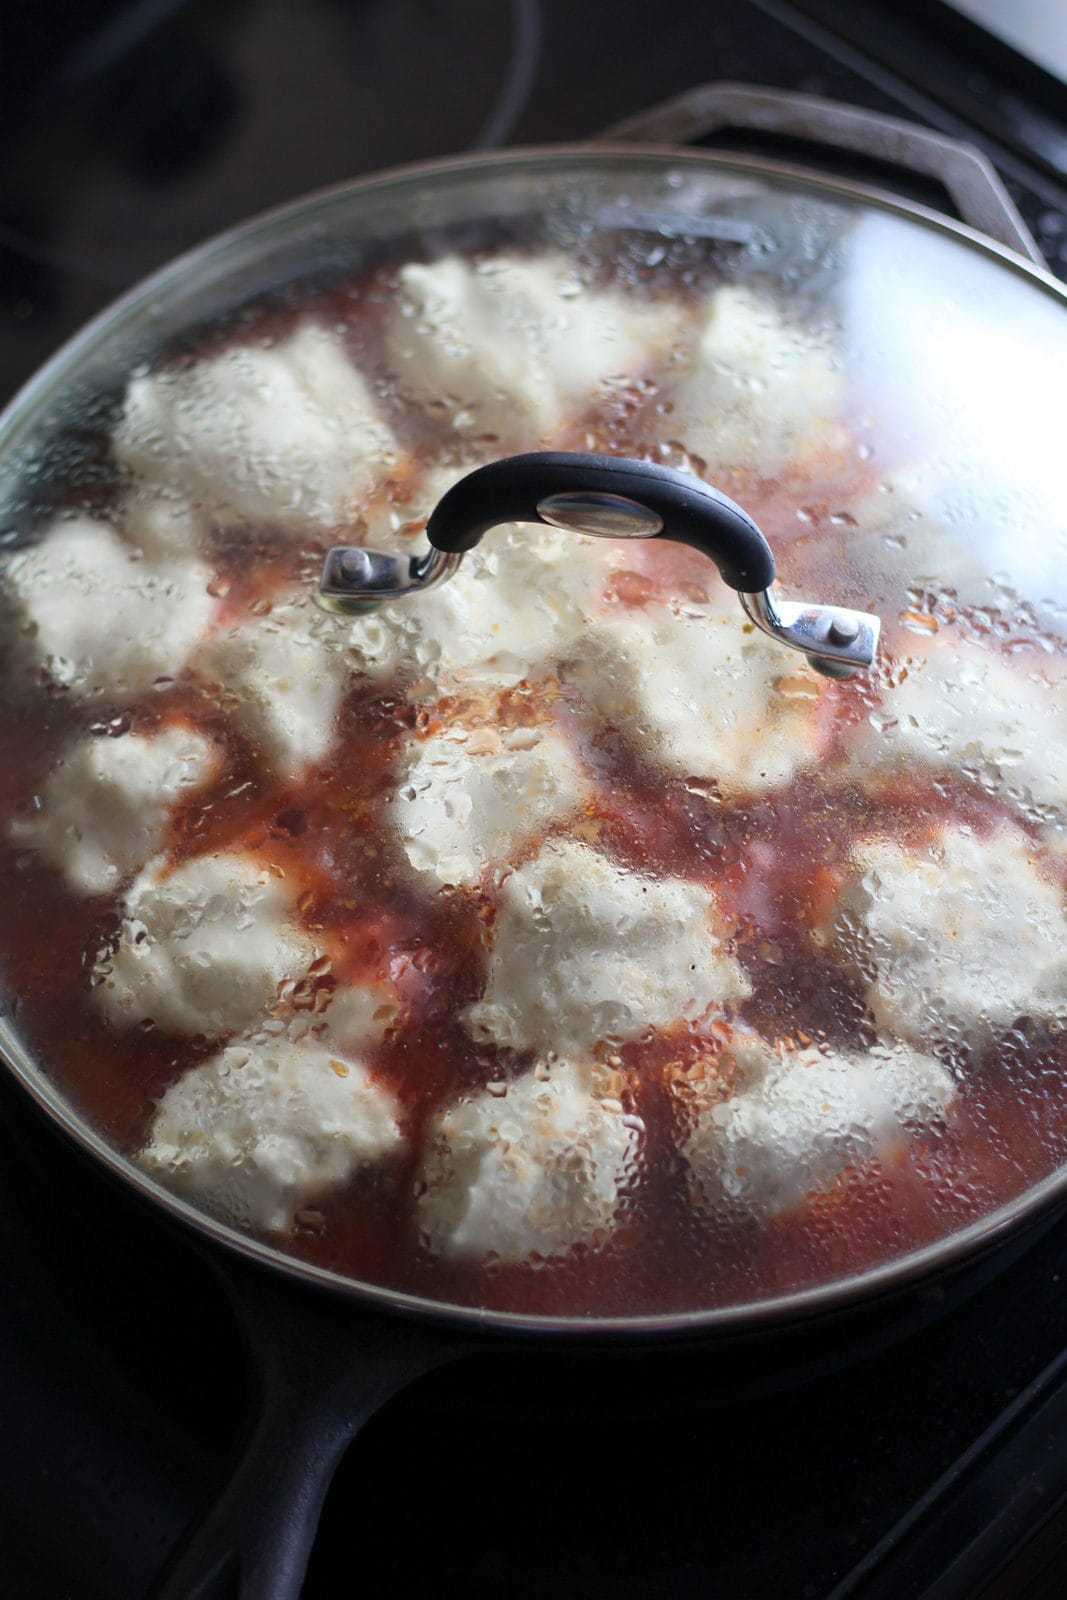 How to make meatballs and dumplings. thewoodenskillet.com